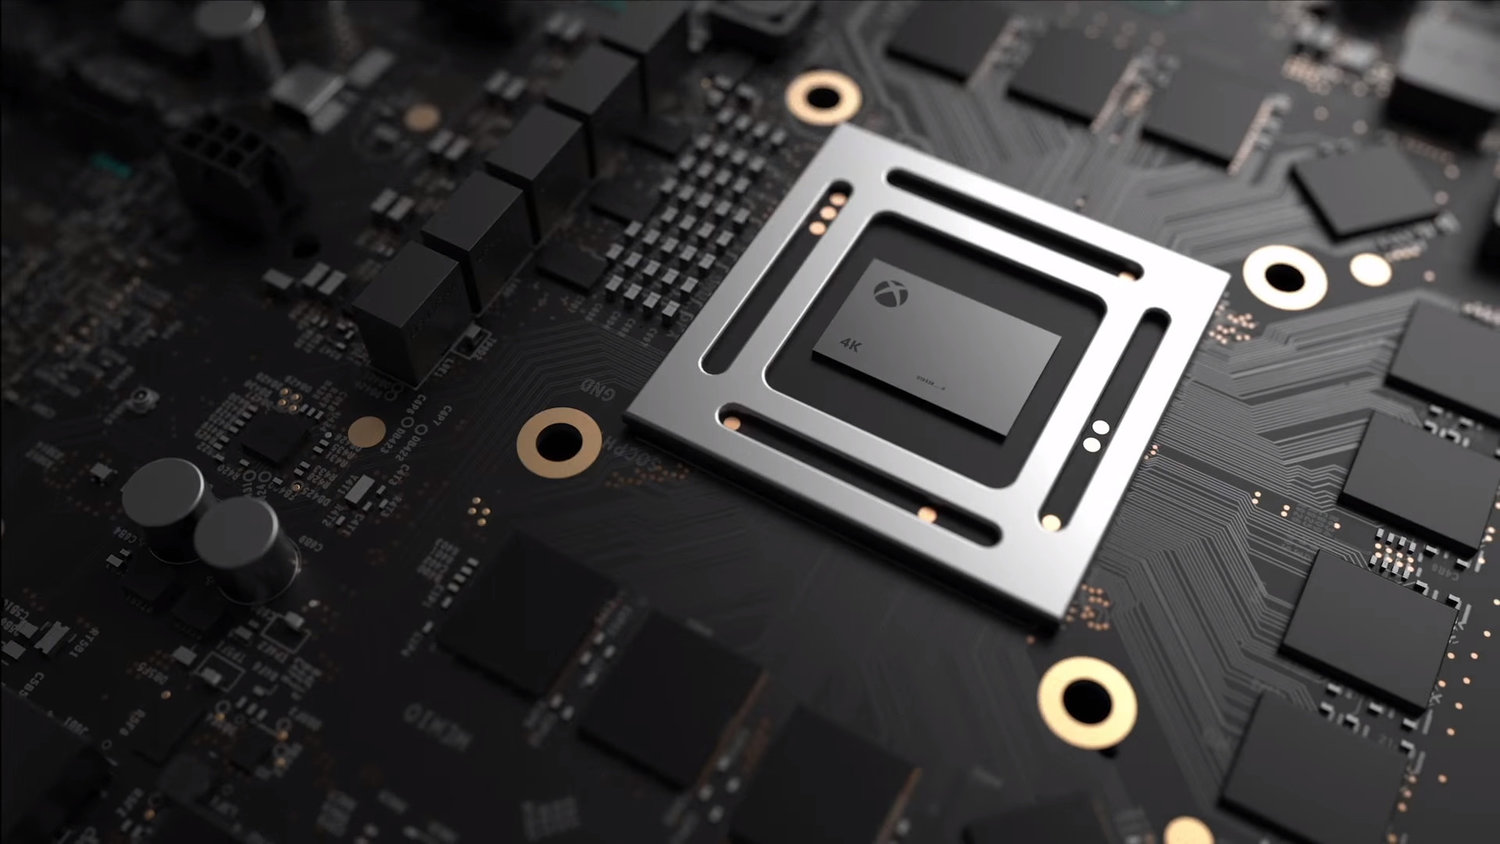 microsoft s project scorpio will natively render games in 4k